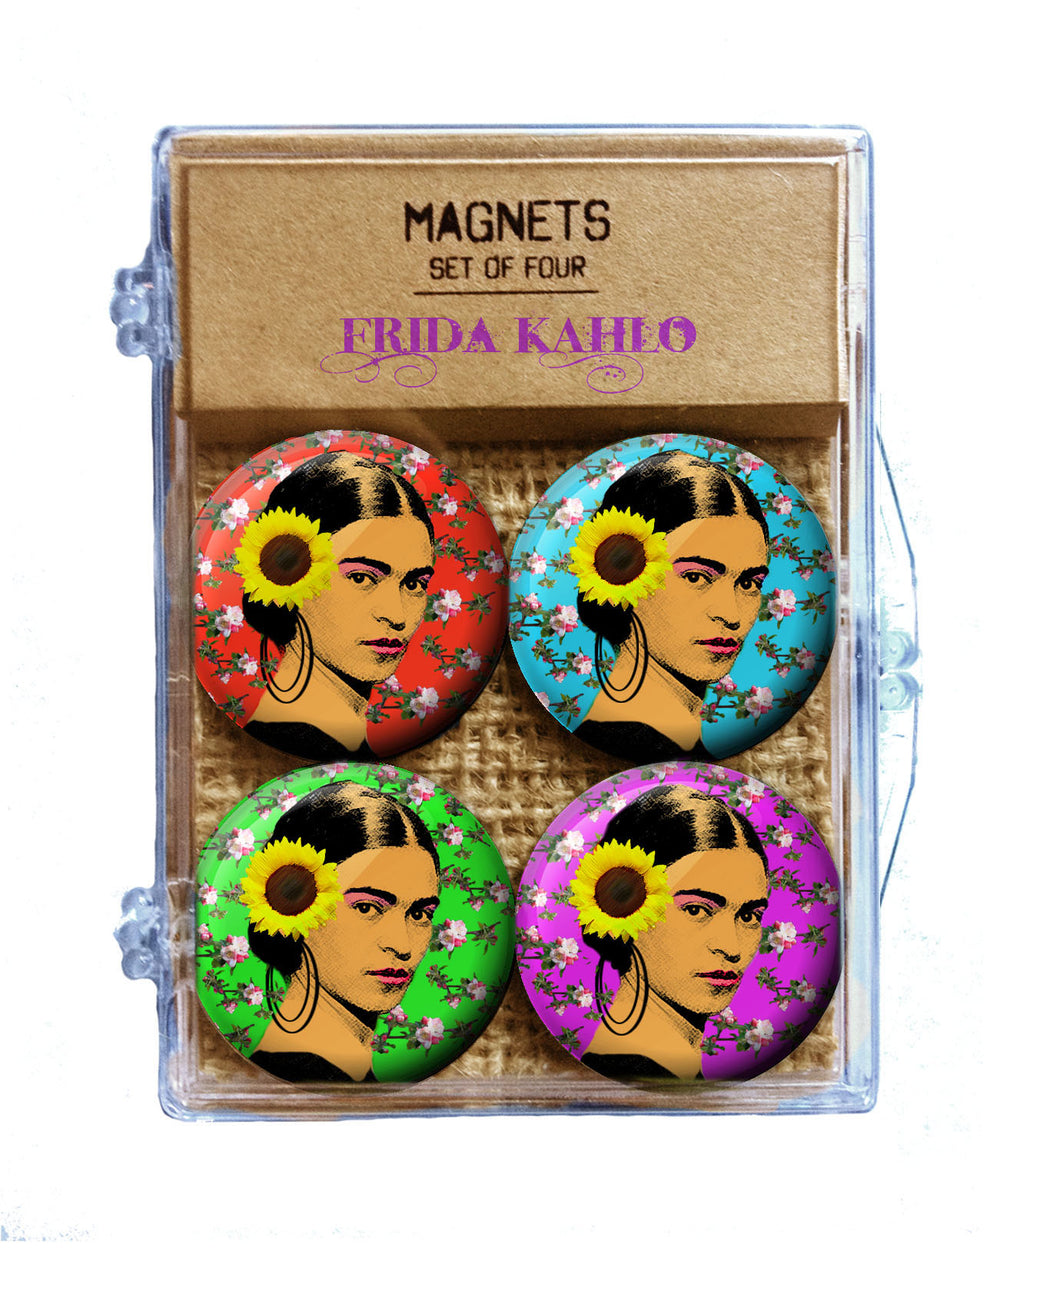 Frida Kahlo Magnets